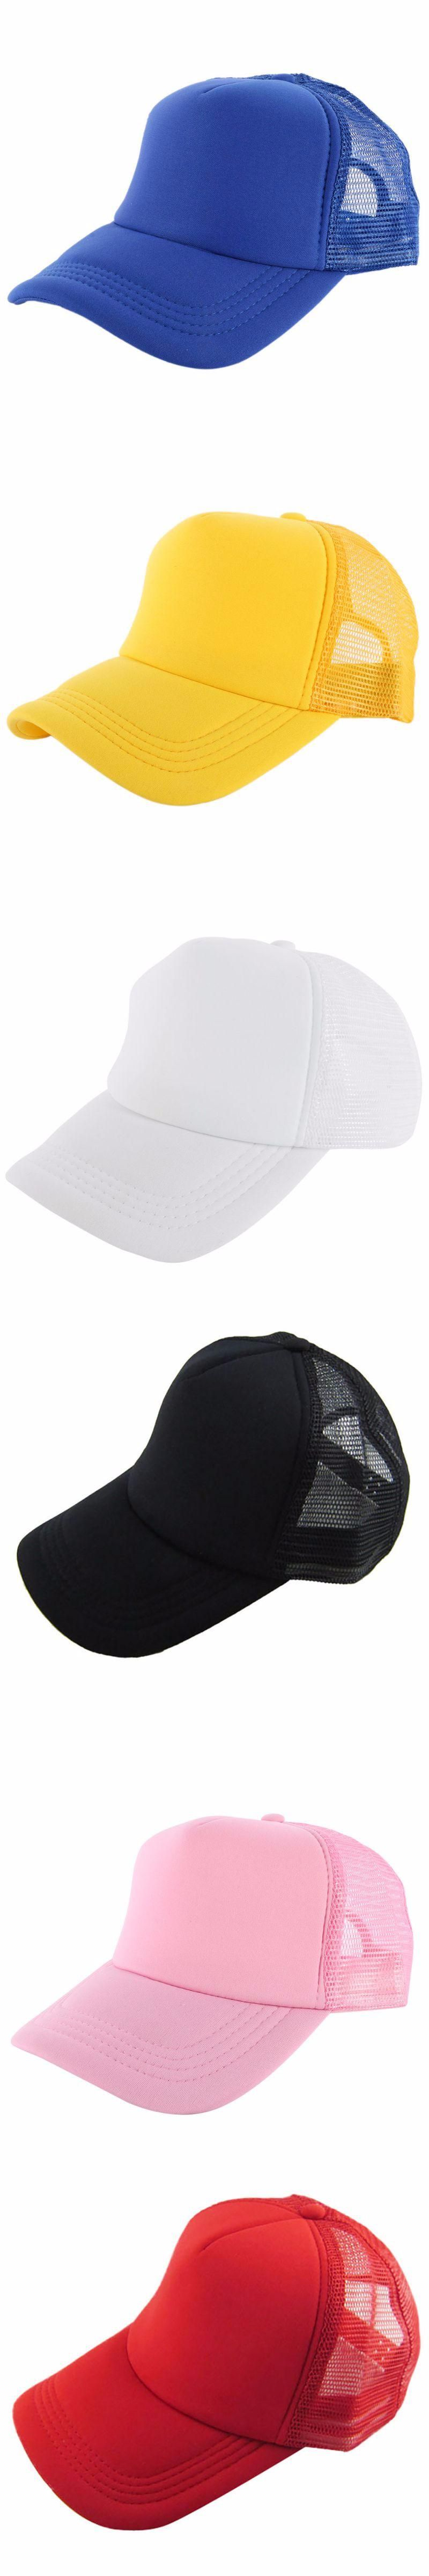 6661b44a7c0 Adjustable Summer Cozy Hats for Men Women Girls Attractive Casual Snapback  Solid Baseball Cap Mesh Blank